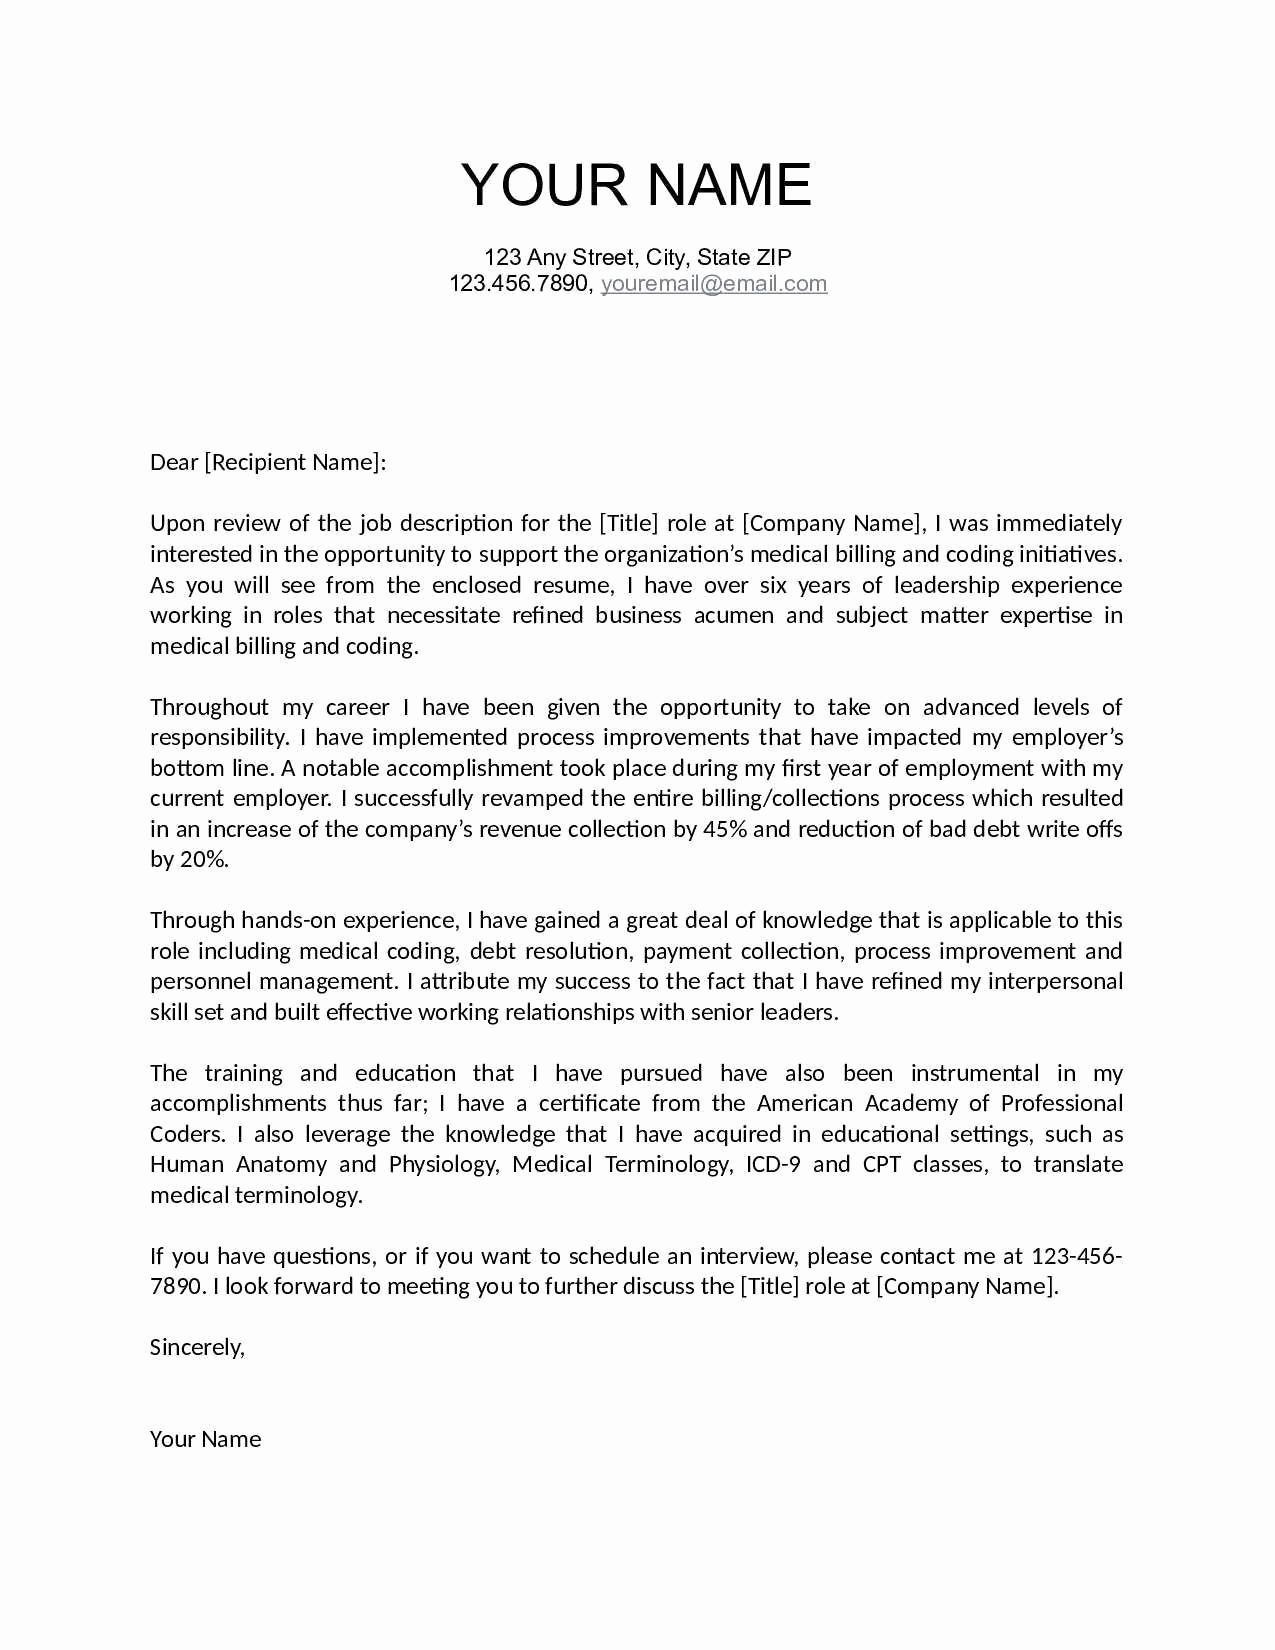 Formal Cover Letter Template - Fax Cover Letters Unique formal Job Fer Letter Valid Job Fer Letter